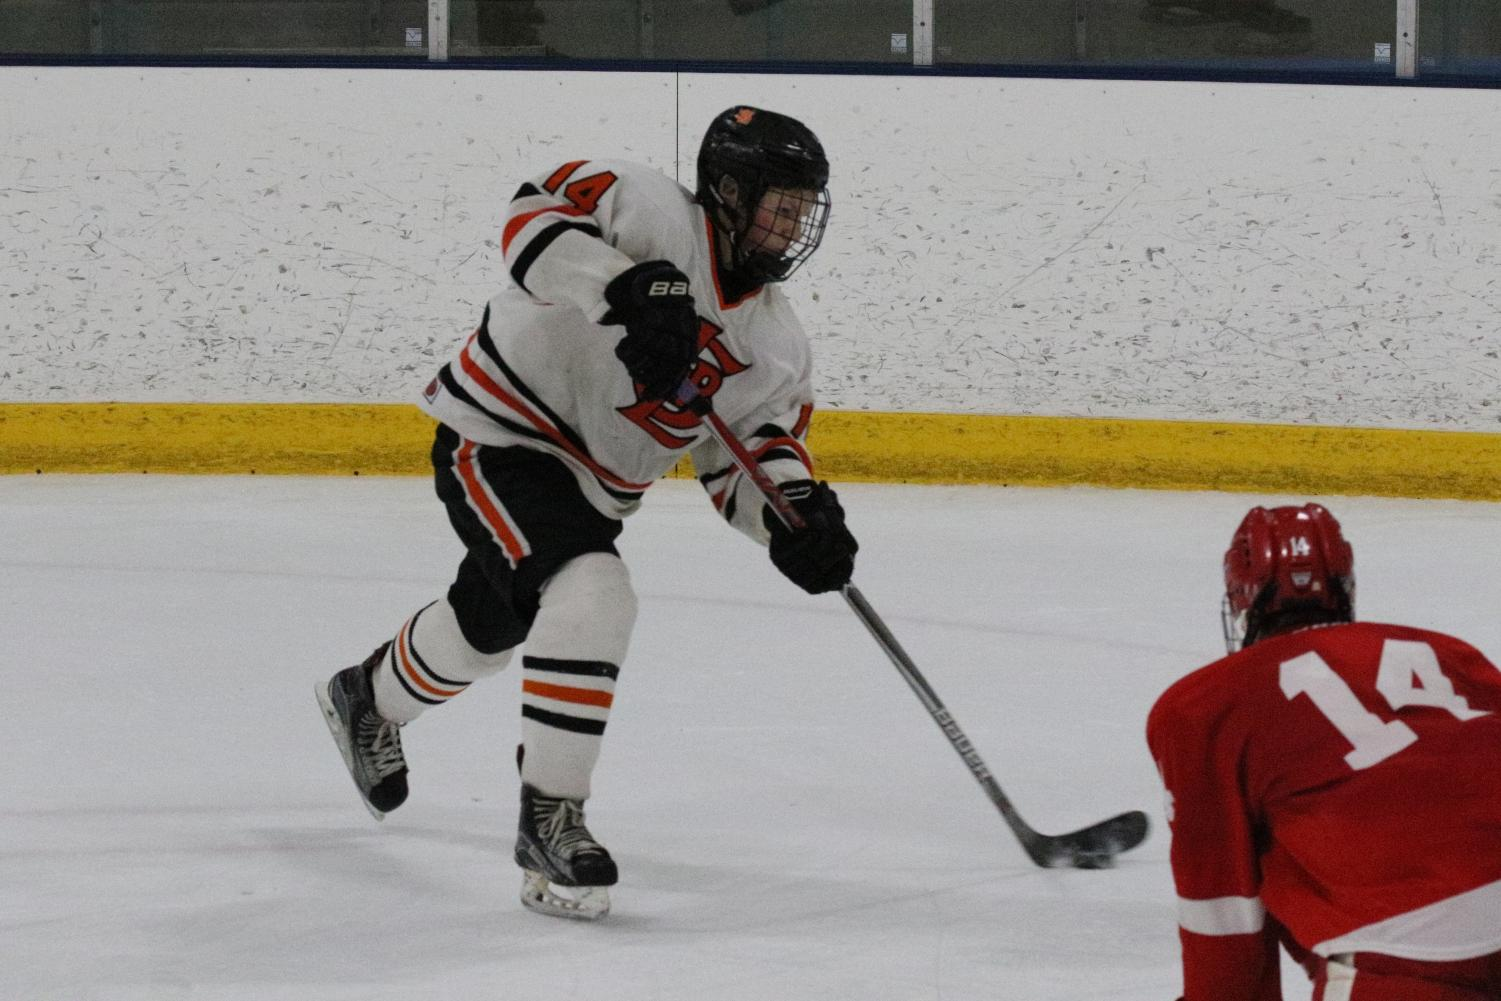 Sophomore Avery Pittman takes a wrist shot in his game against Benilde